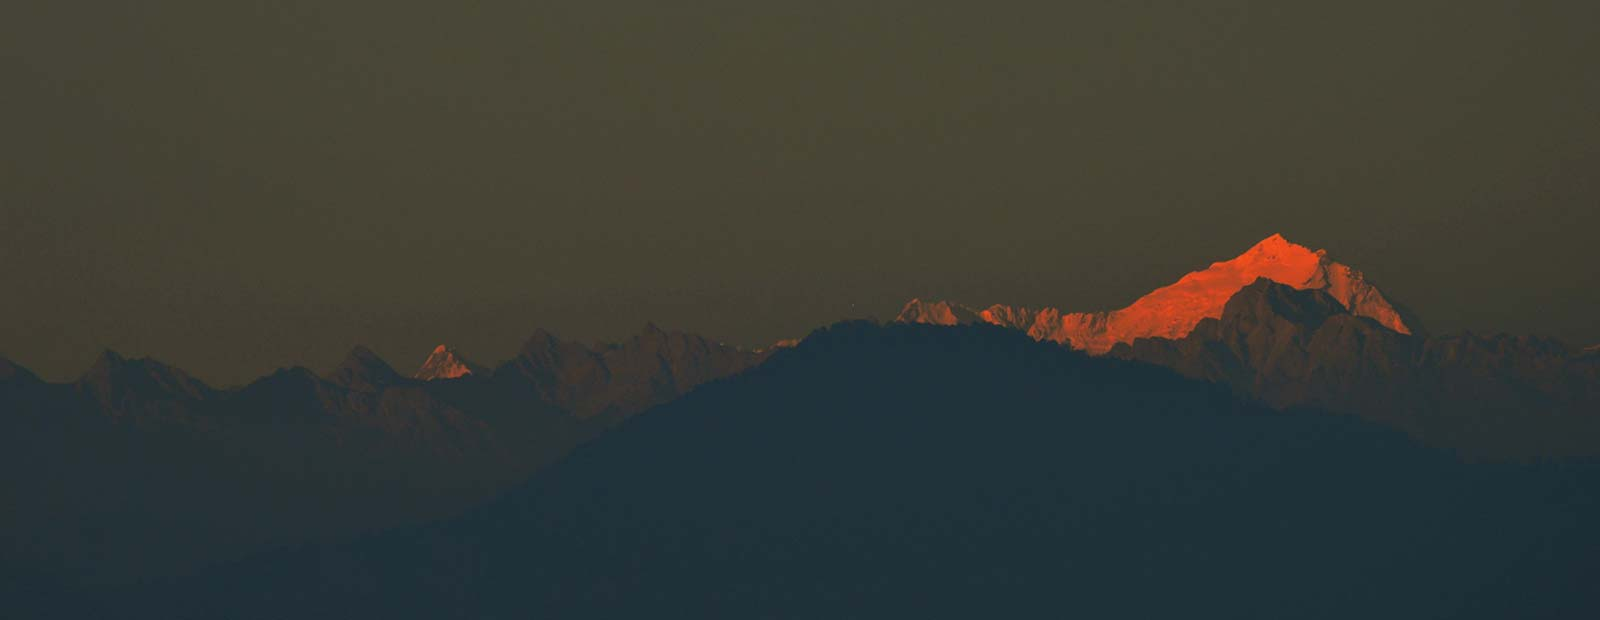 Mountain-View-from-KTM-SUNSET